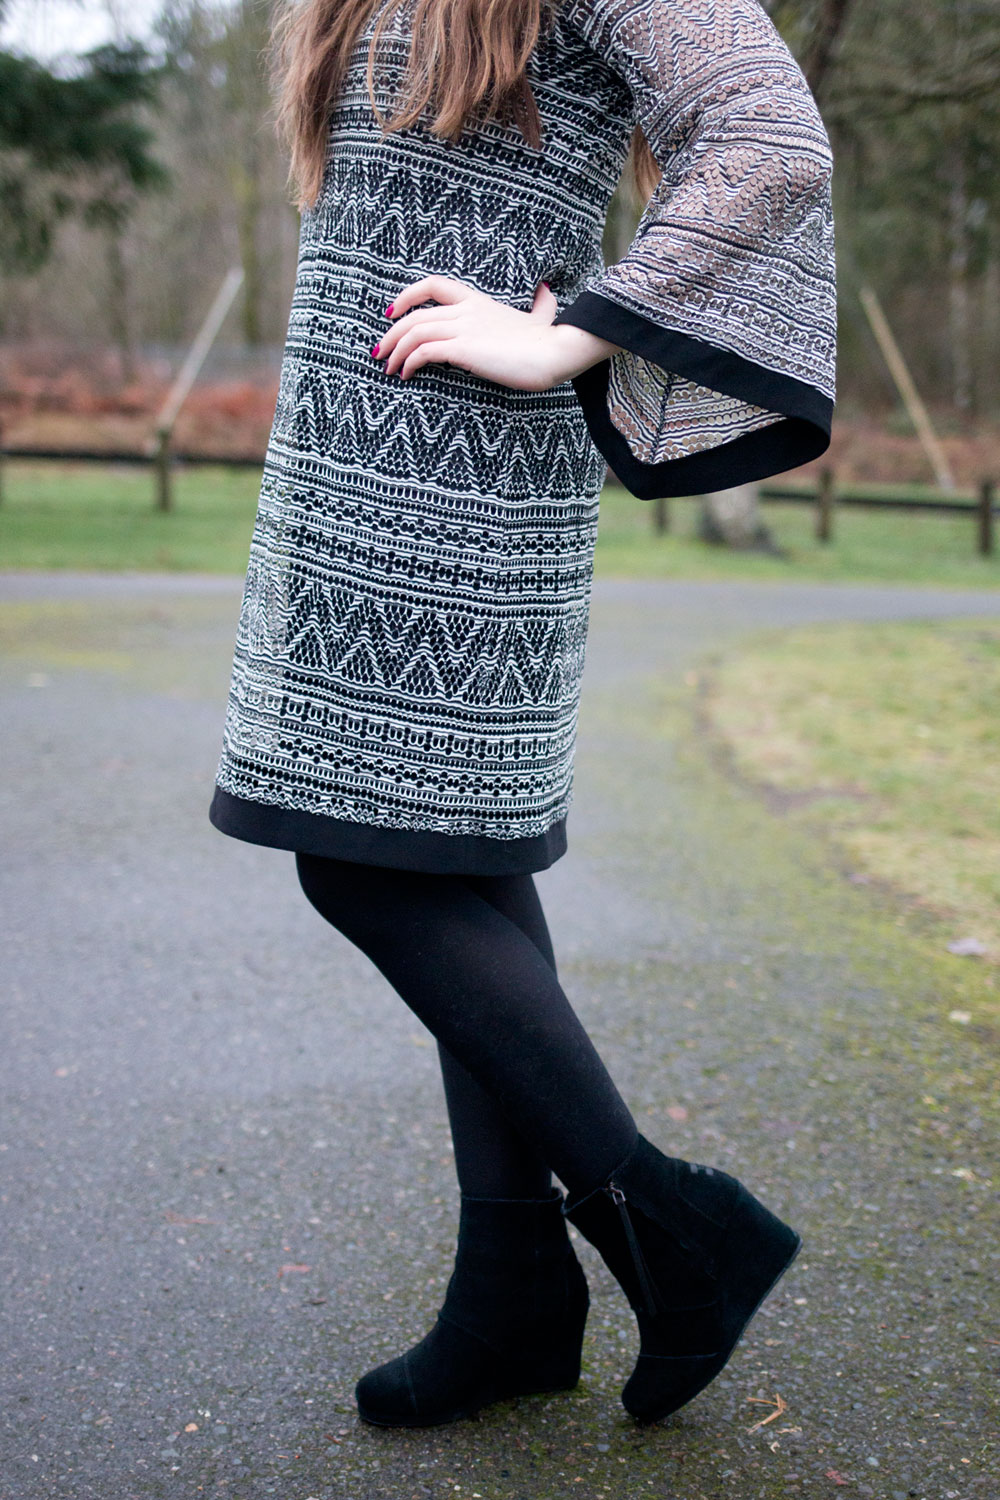 Monochromatic Patterned Dress Outfit from Fred Meyer Apparel // Hello Rigby Seattle Fashion & Style Blog